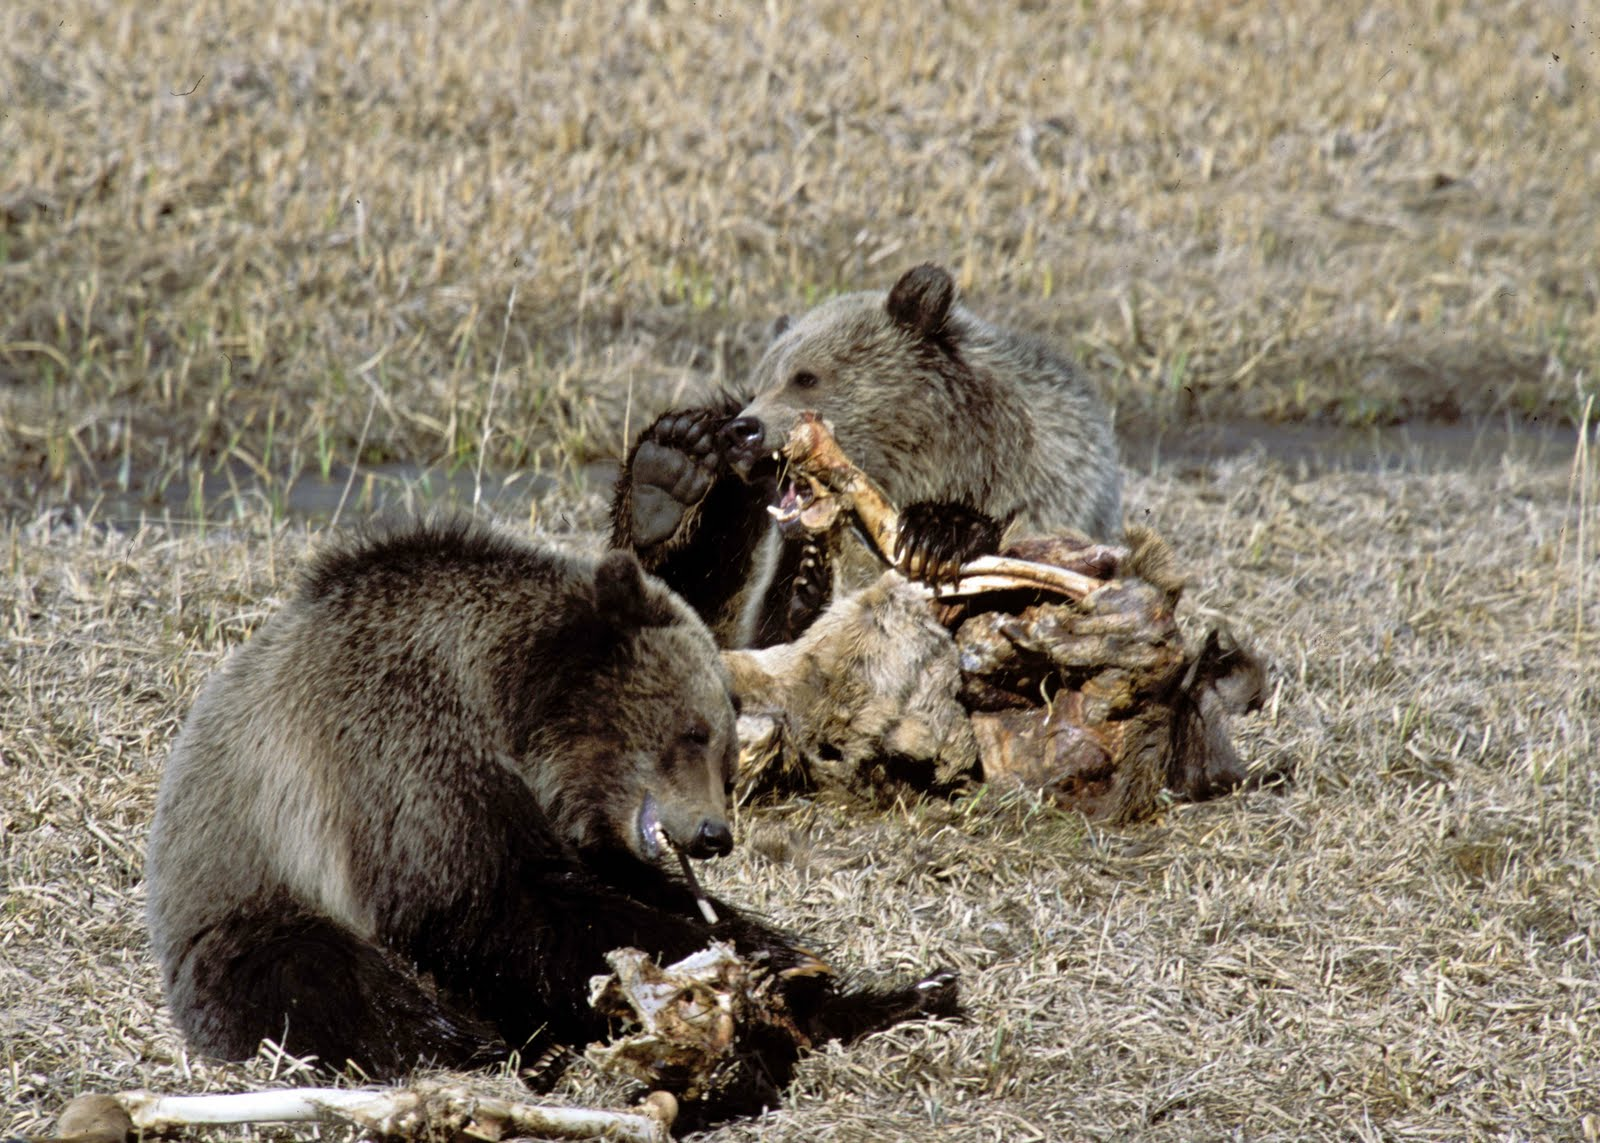 Grizzly Bear Eating Moose